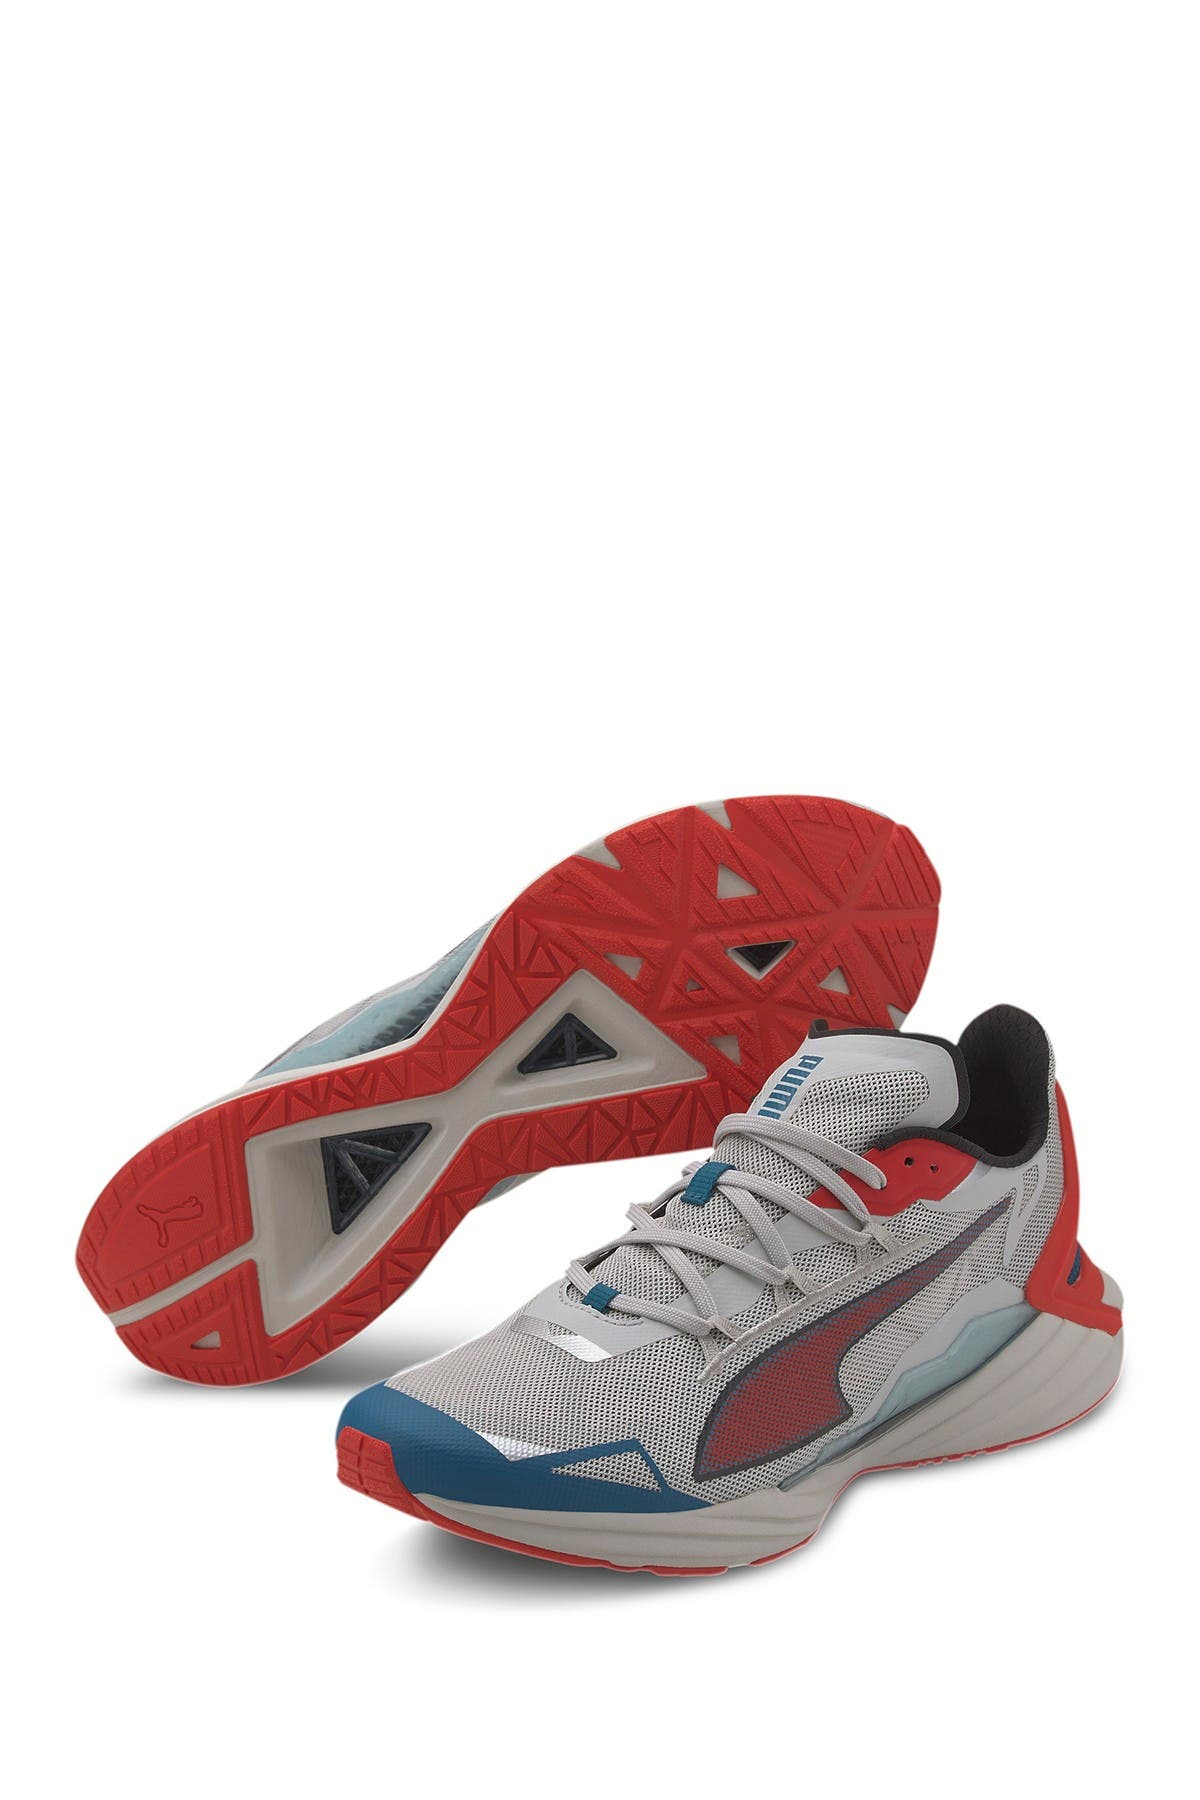 Image of PUMA UltraRide Running Shoe